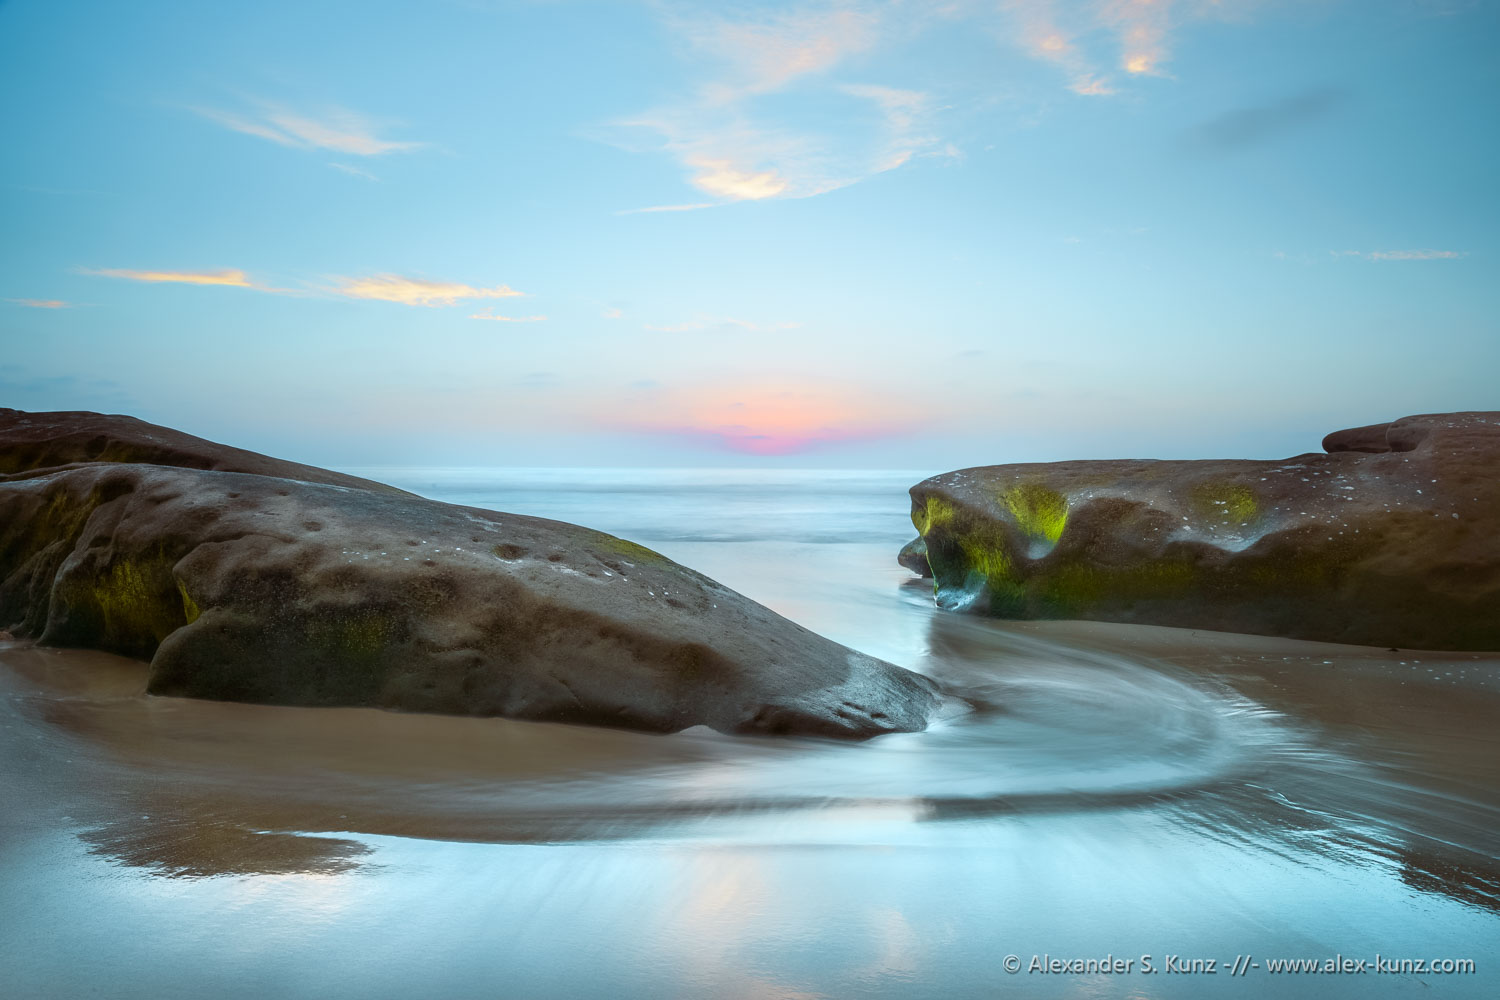 Twilight at Windansea Beach, La Jolla, California